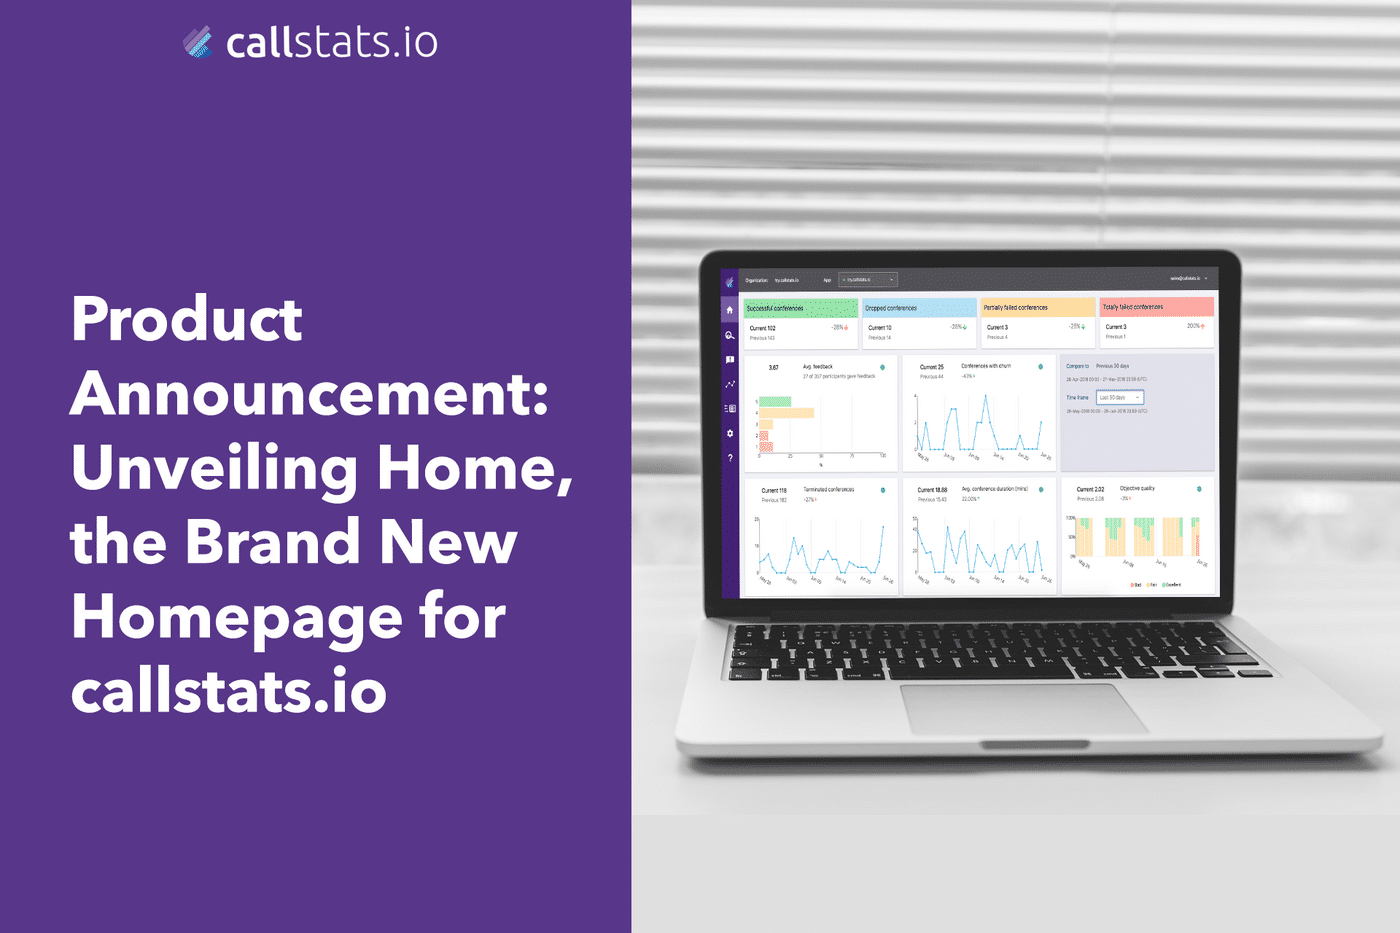 Product Updates: Unveiling the brand new homepage for callstats.io